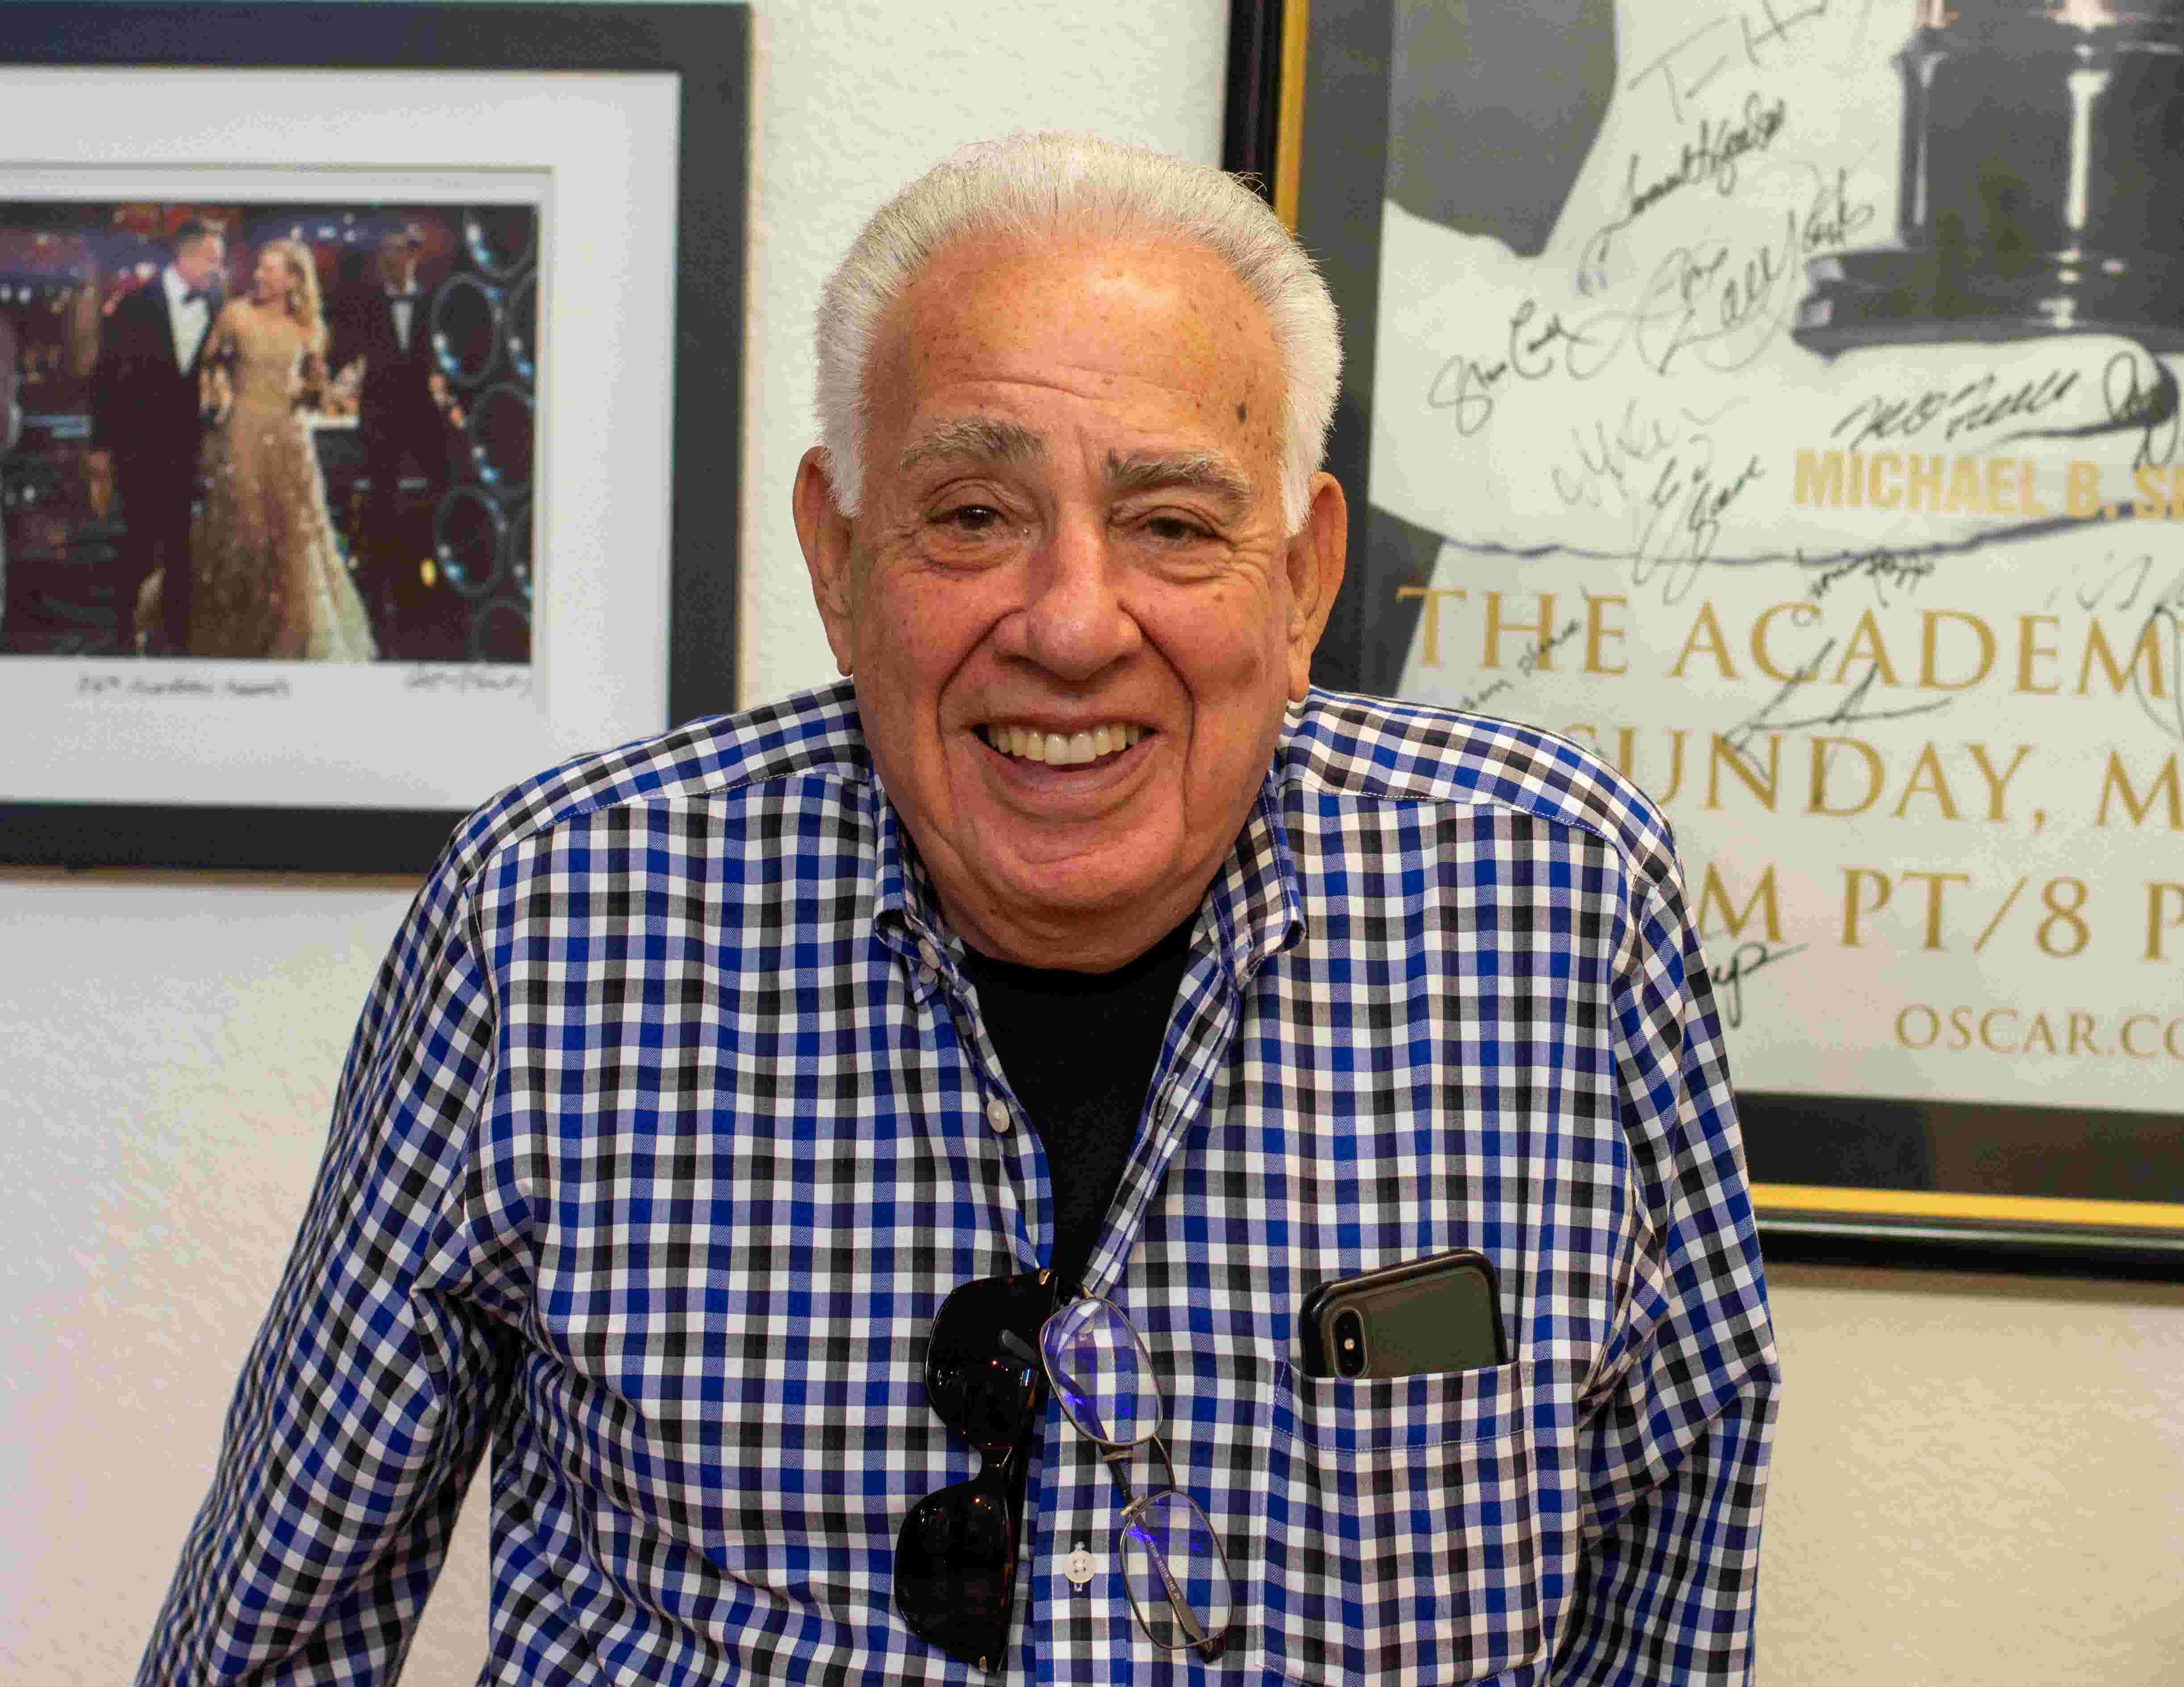 Oscars producer behind jazz festival celebrating music 'integral' to Palm Springs history